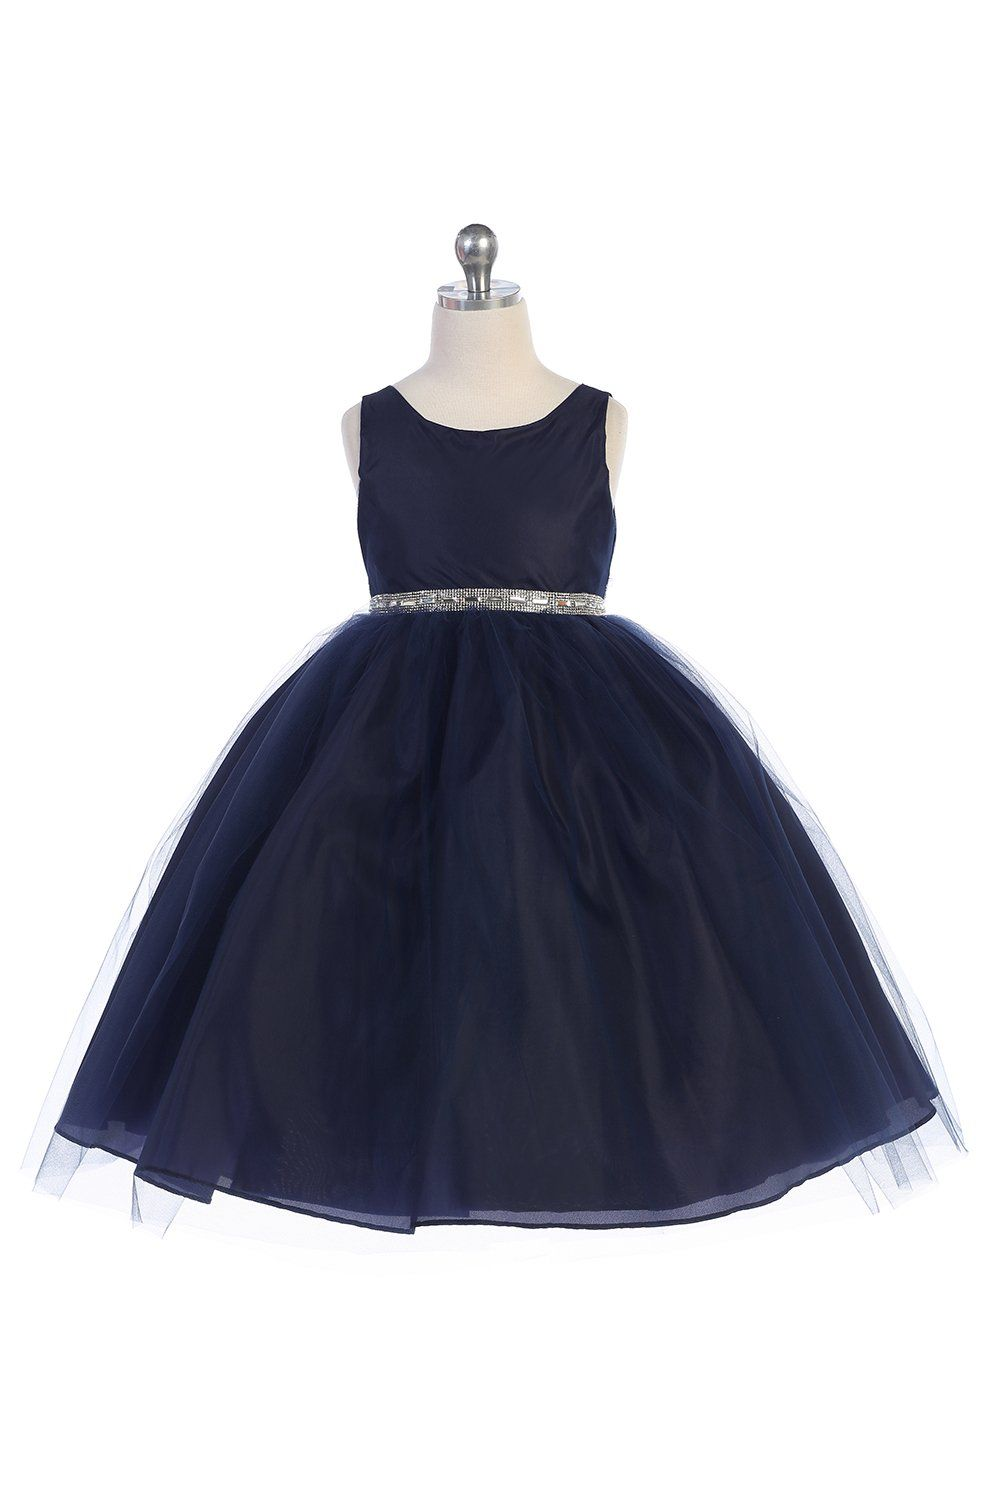 b7a27e3393ae Navy Blue Satin Bodice Flower Girl Dress with Overlay Tulle Skirt ...